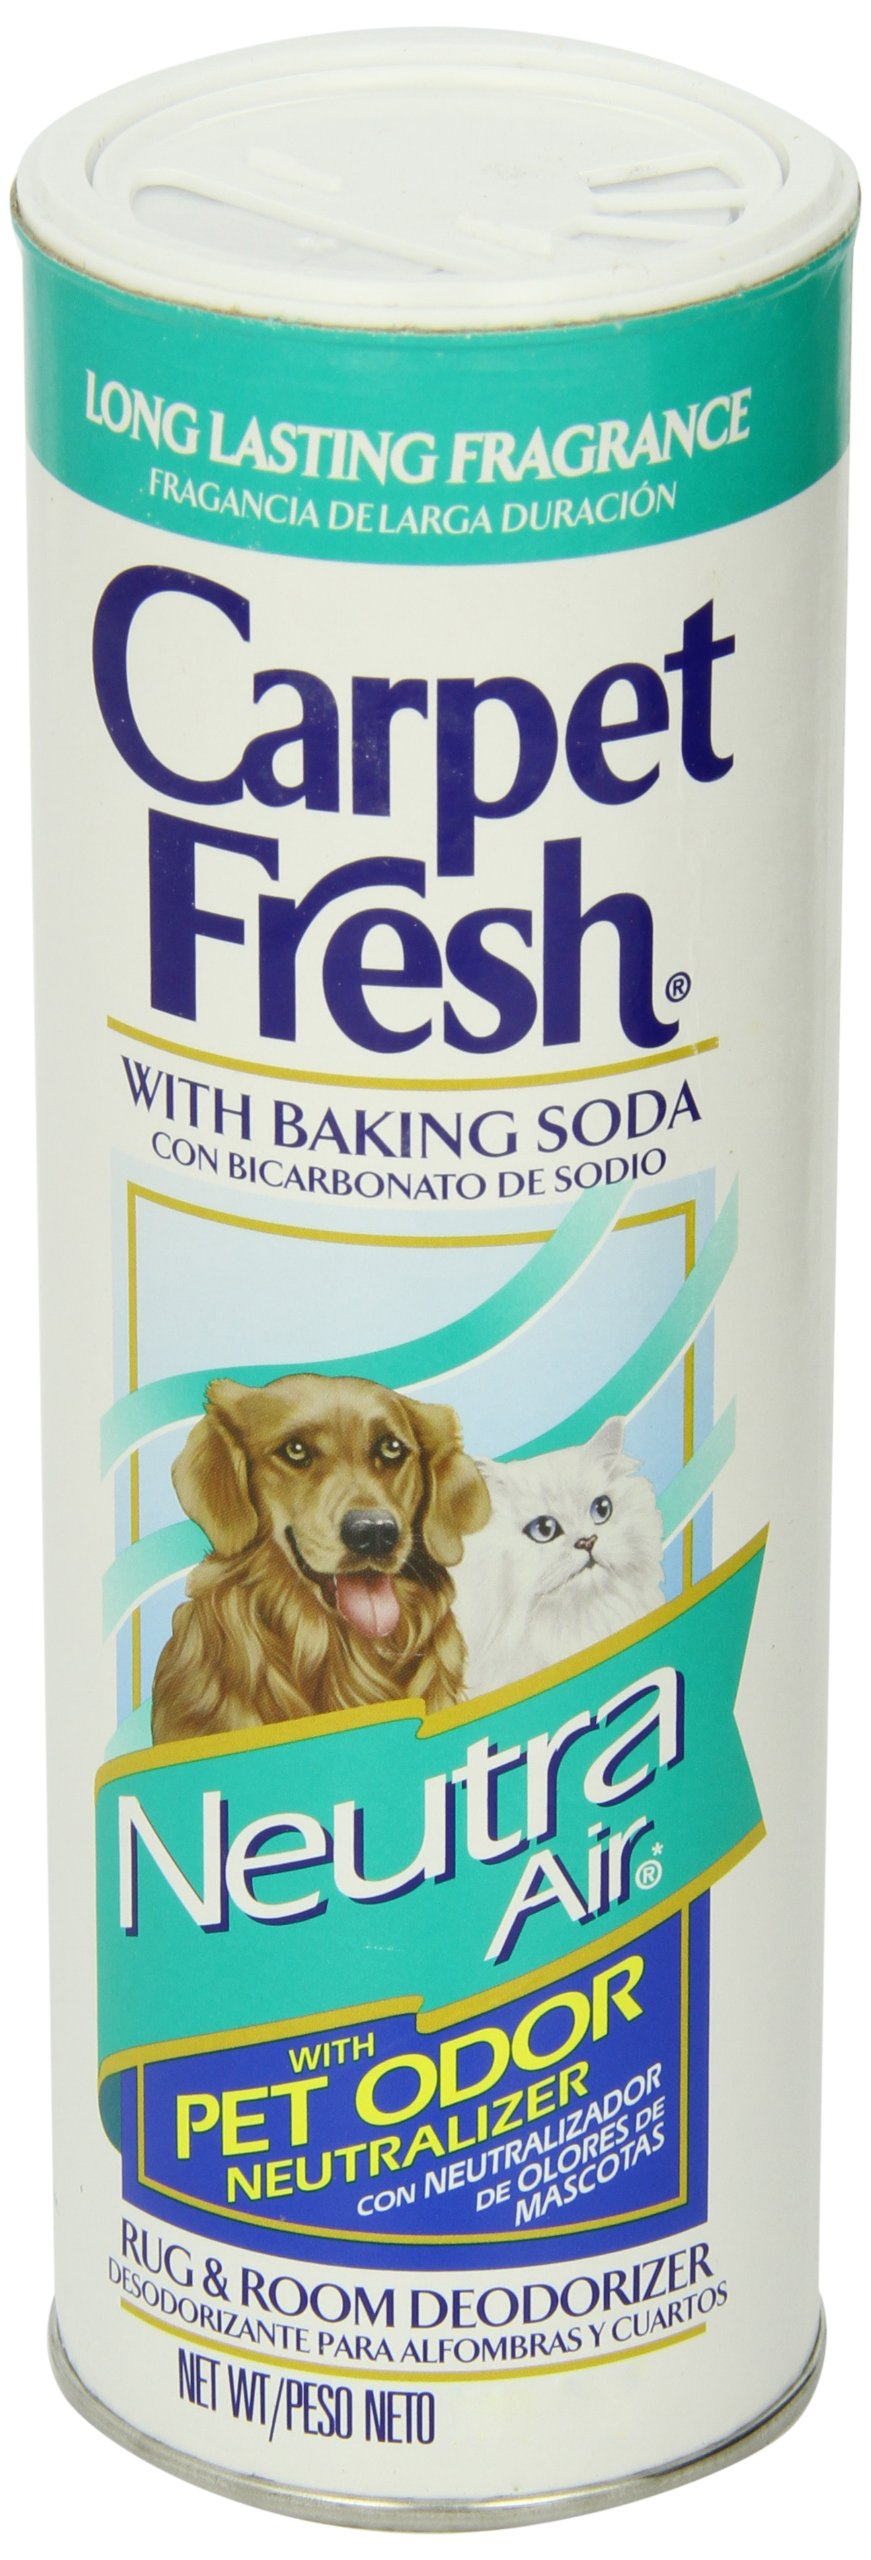 Carpet Fresh Rug and Room Deodorizer with Baking Soda and Pet Odor Neutralizer, Neutra Air Fragrance, 14 OZ [12 Pack]